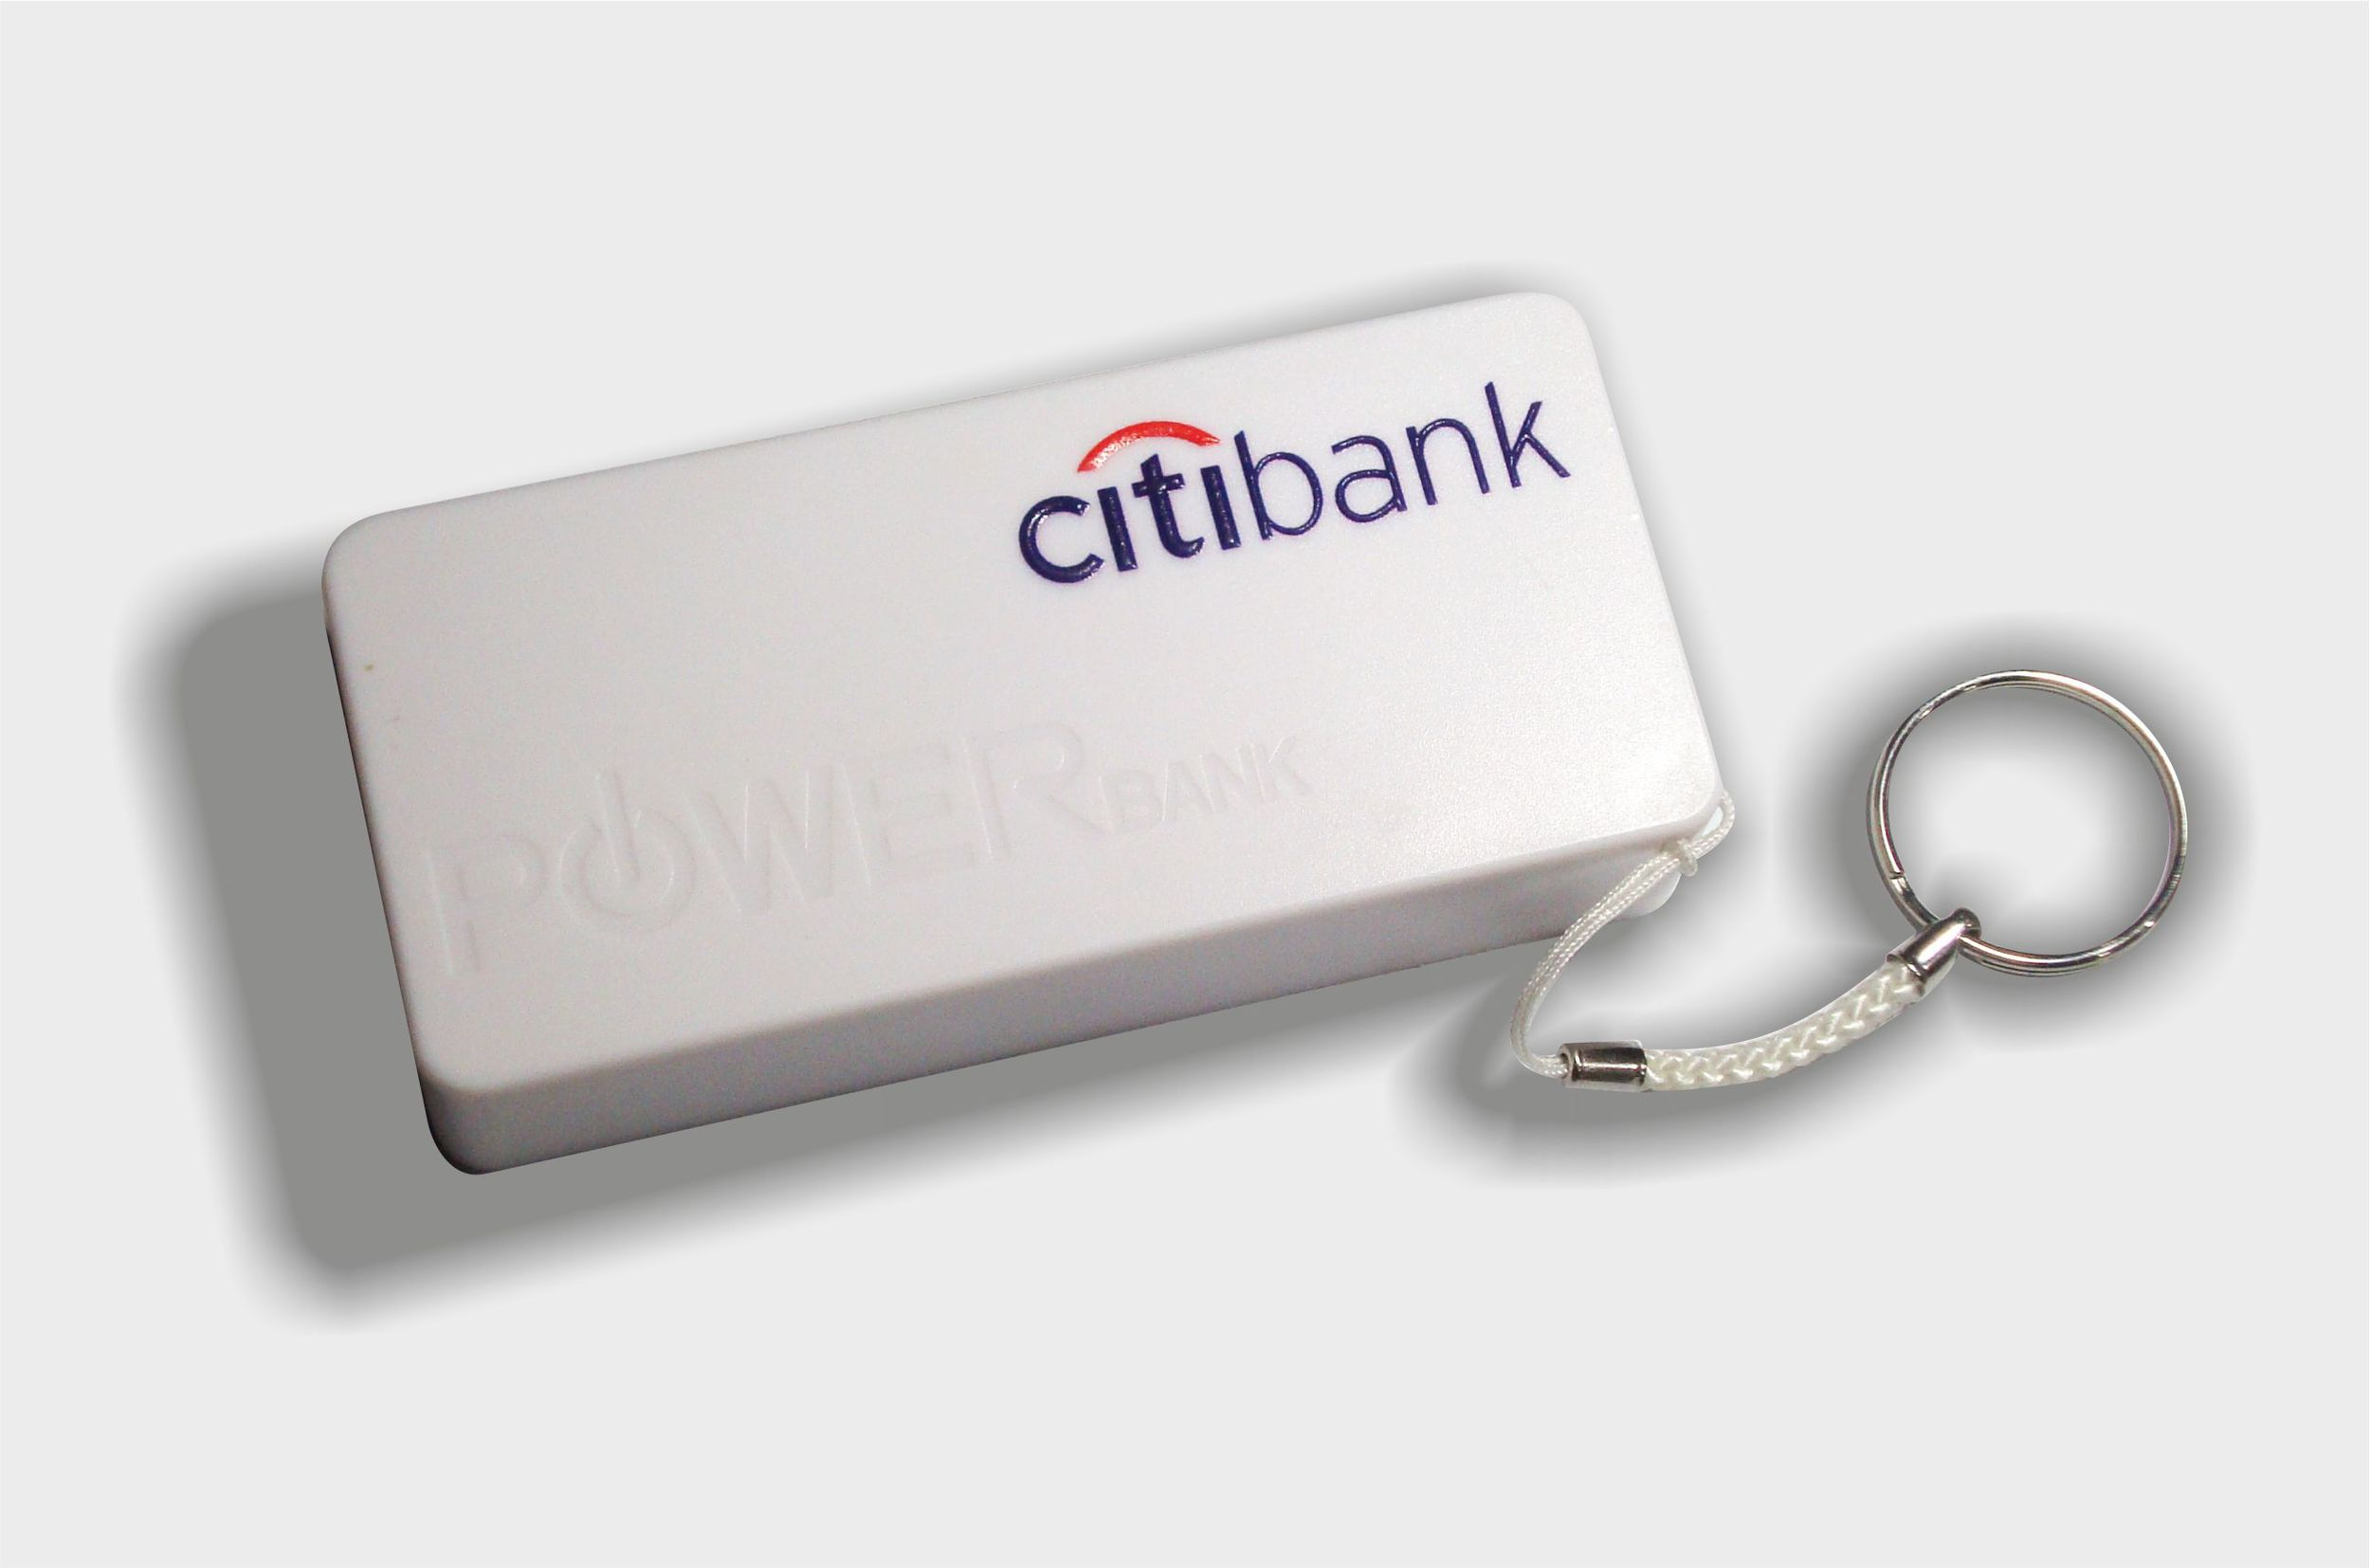 powerbank7.jpg